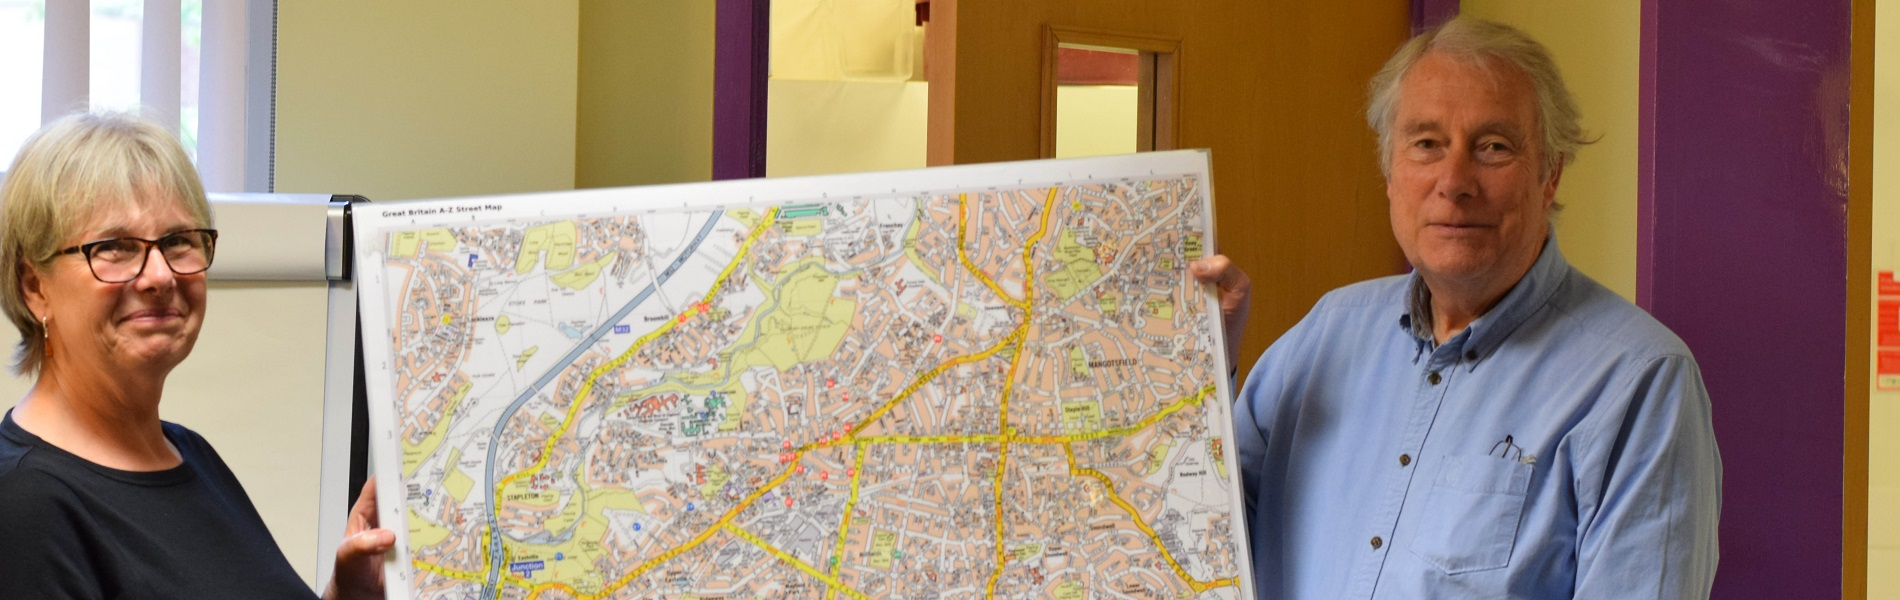 Greater Fishponds Asset Mapping Report